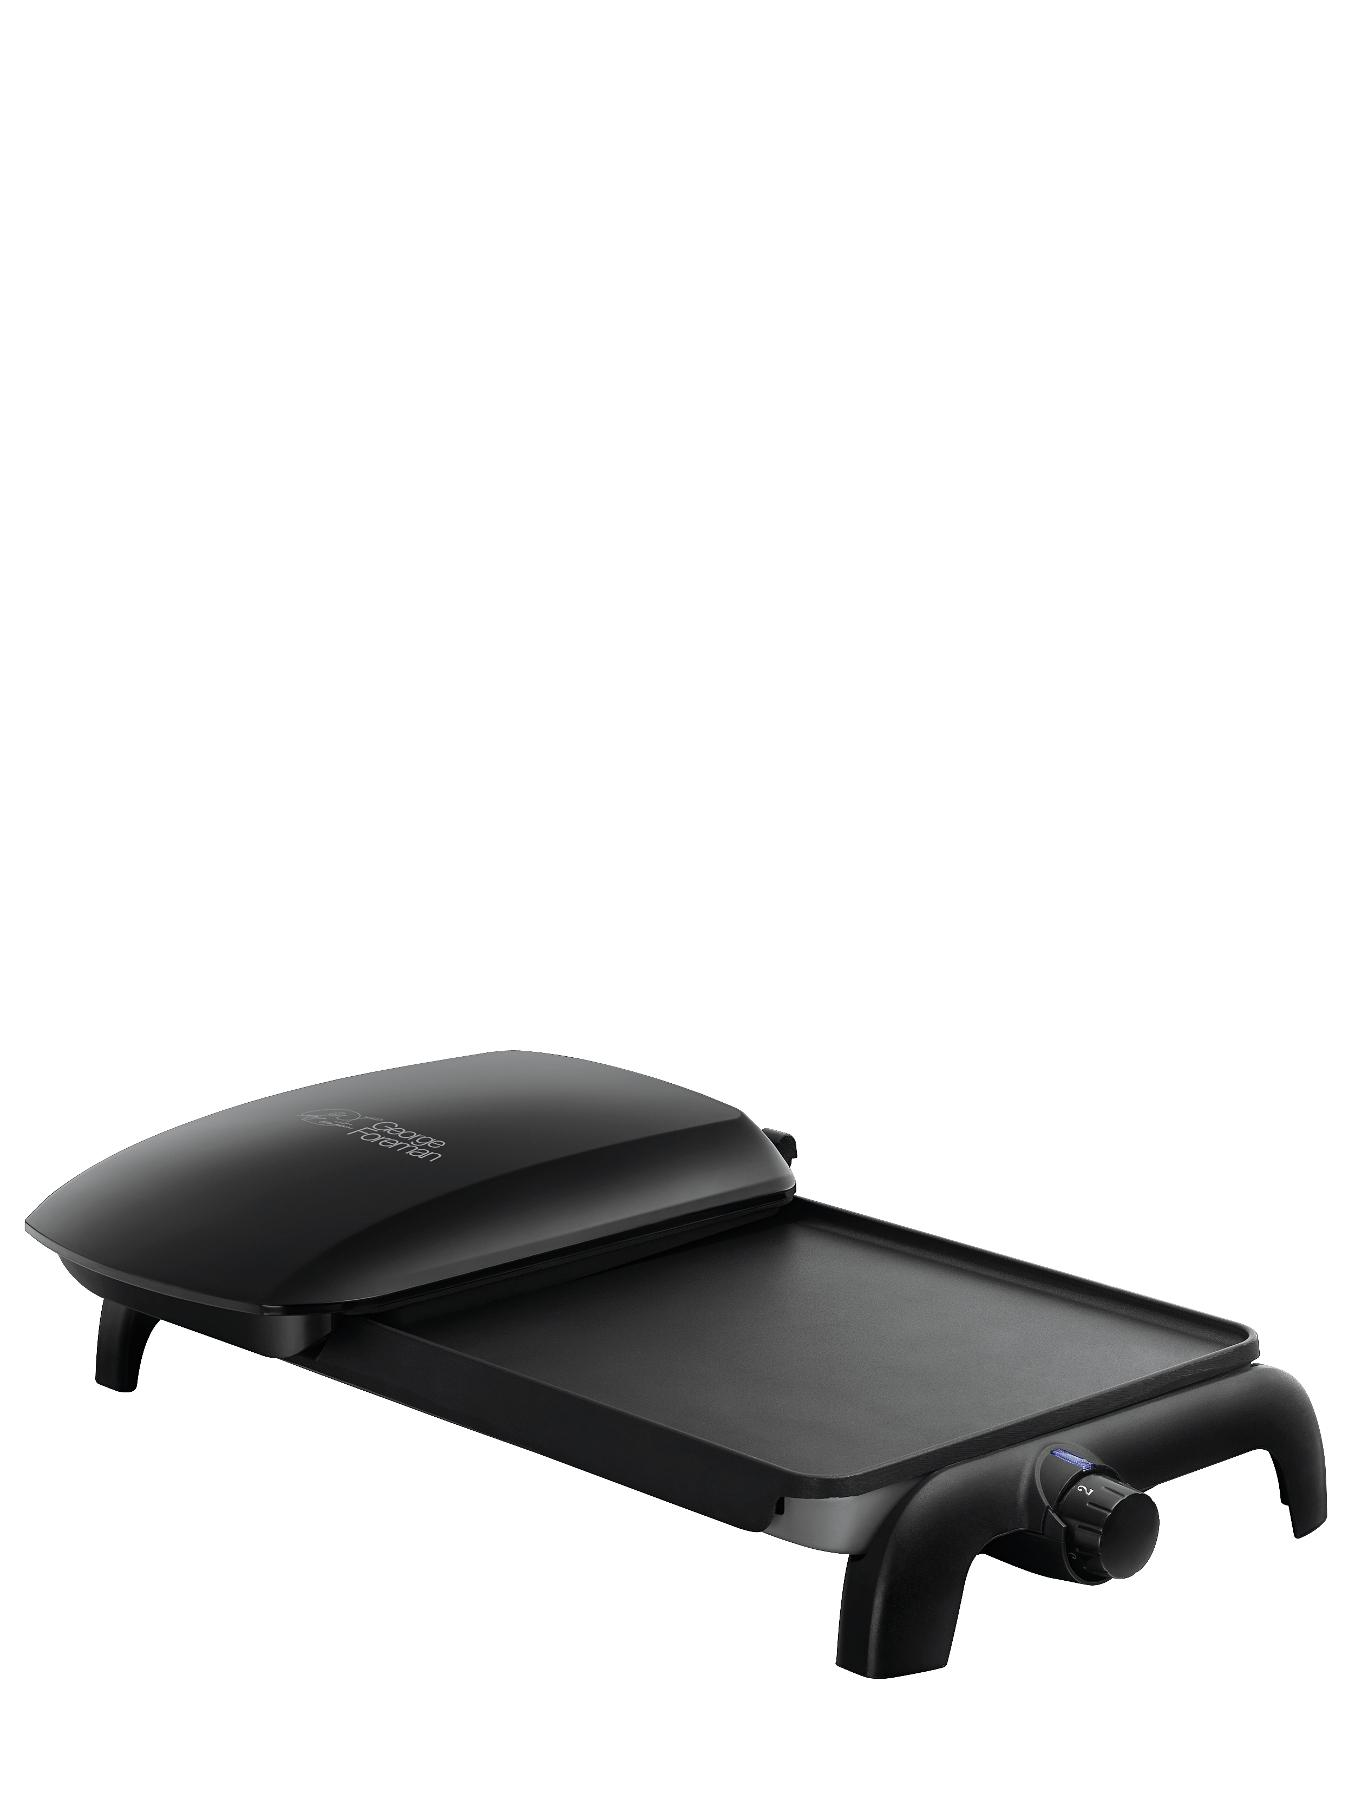 18603 10-Portion Grill and Griddle